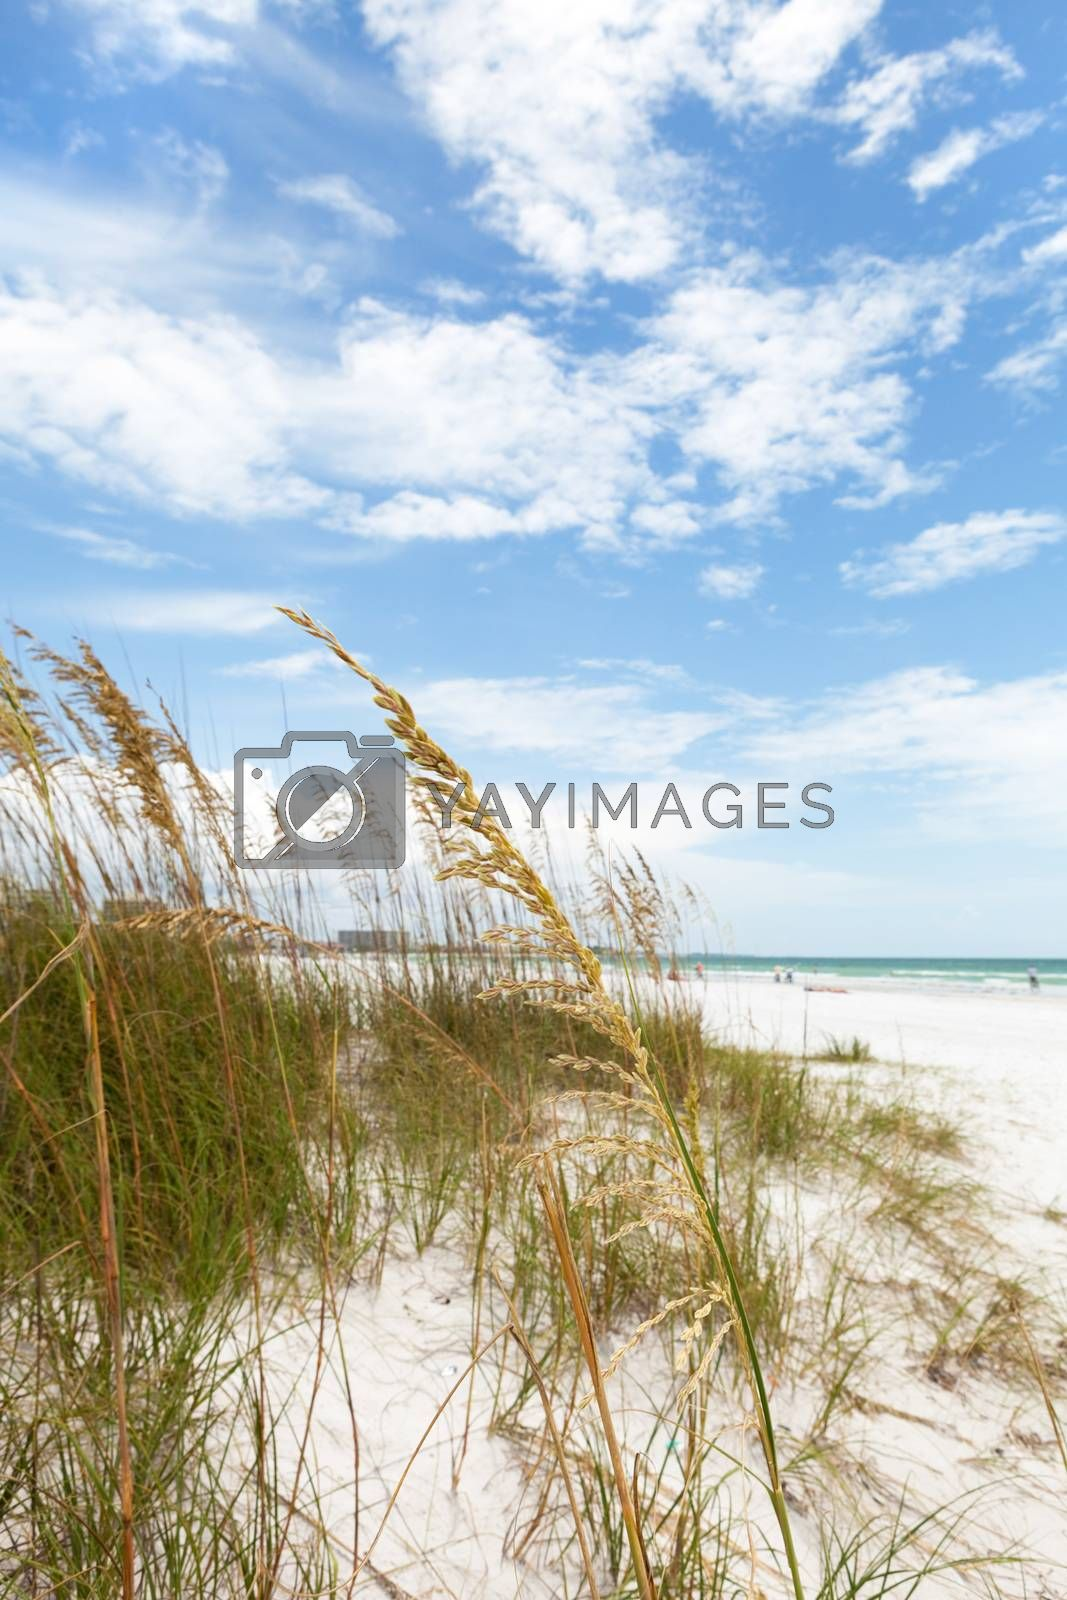 Siesta Key Beach is located on the gulf coast of Sarasota Florida with powdery sand. Shallow depth of field with focus on the grasses.